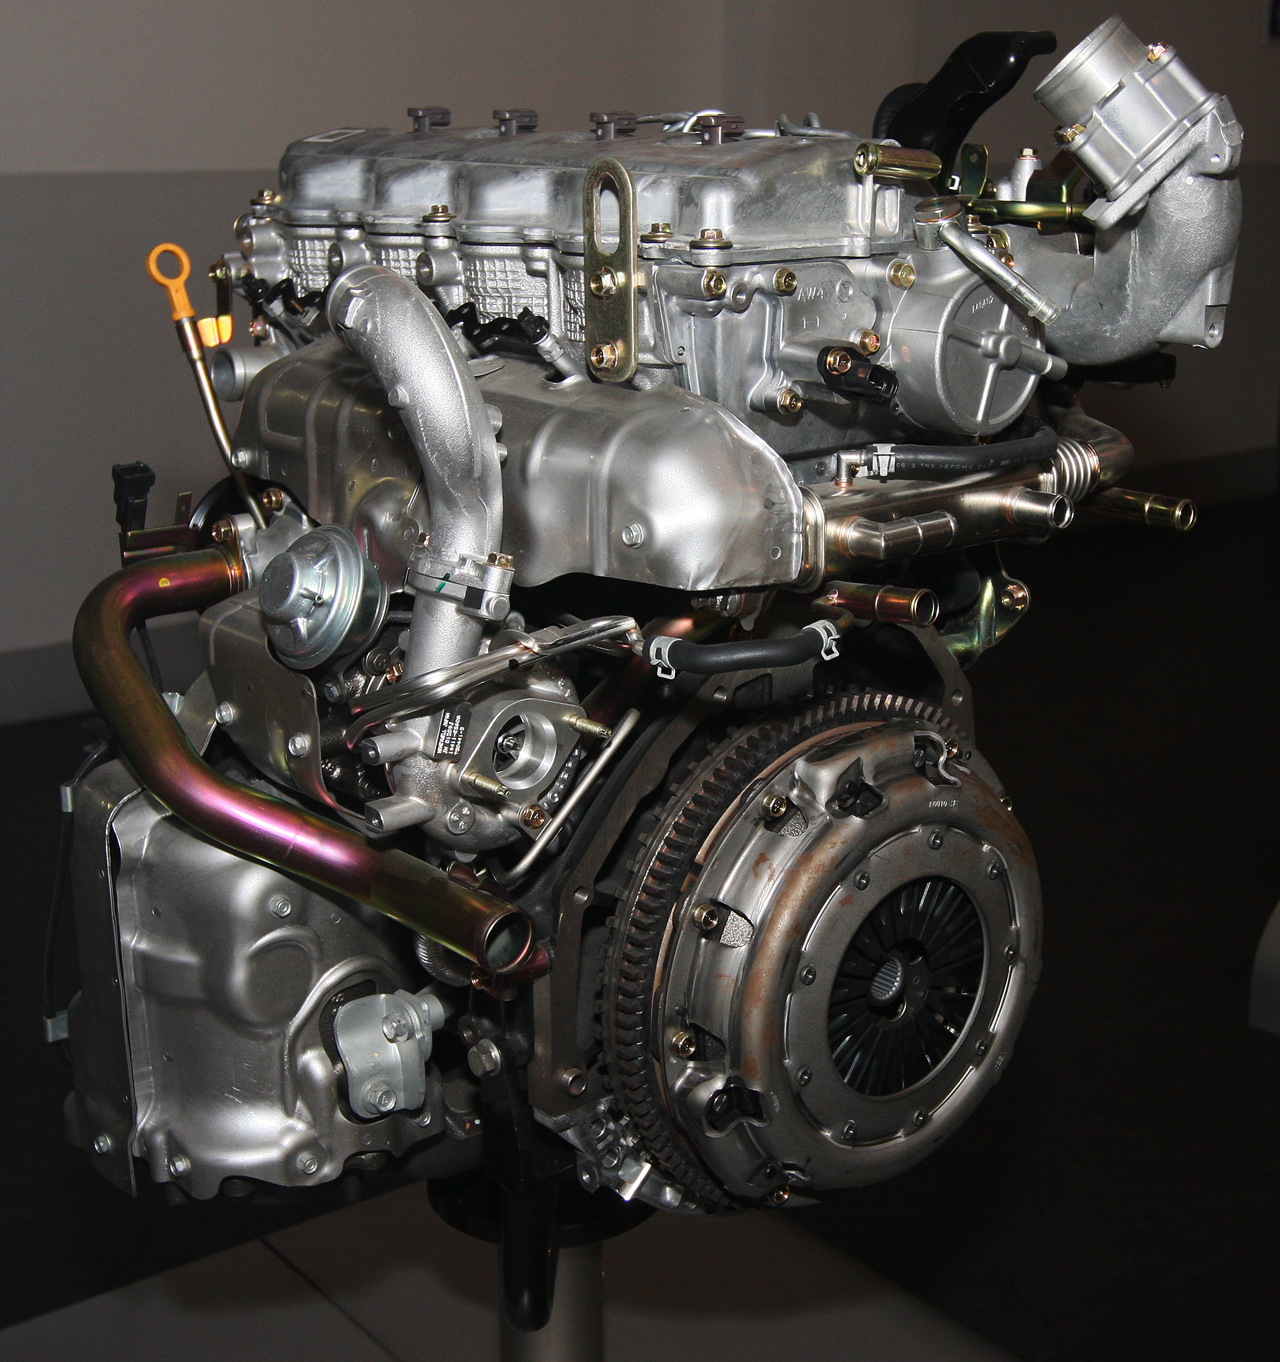 hight resolution of file 2003 nissan yd22ddti engine right rear jpg